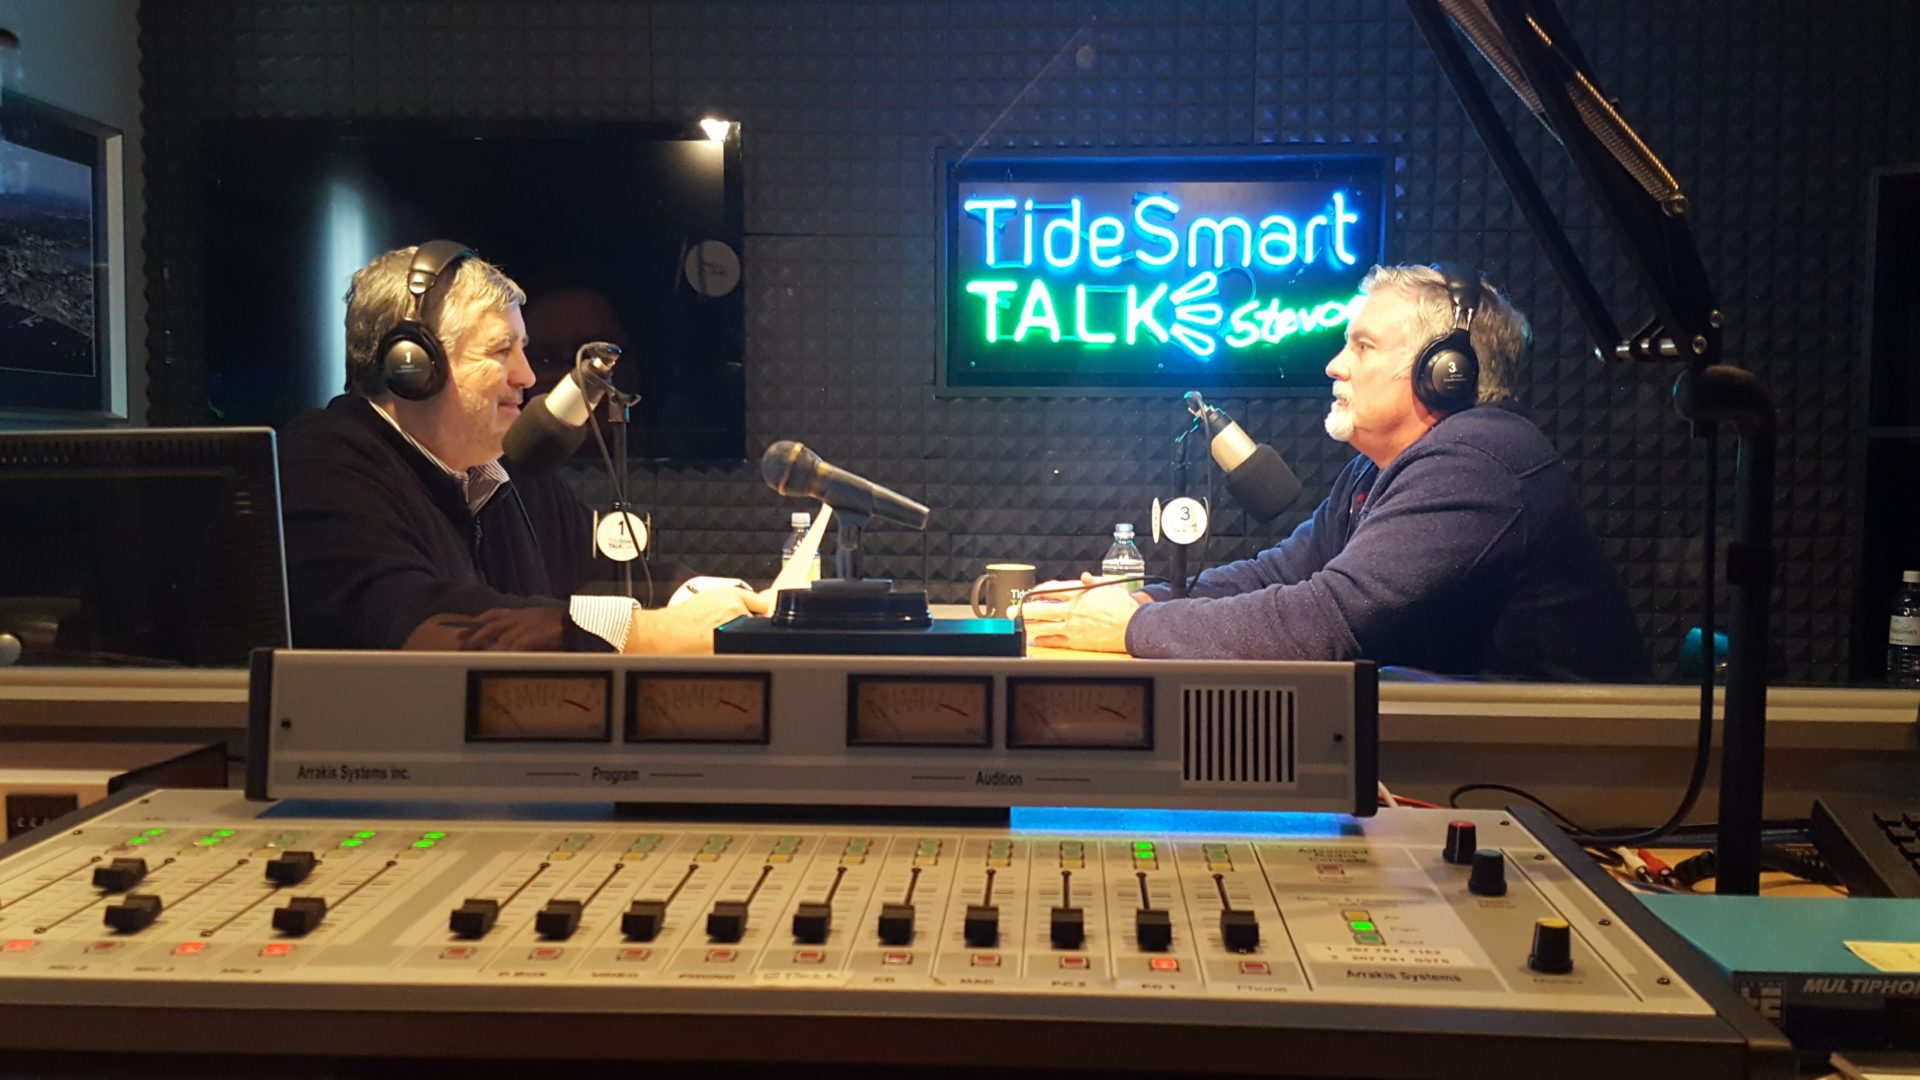 Host of TideSmart Talk with Stevoe, Steve Woods, welcomed Executive Director of Preble Street, Mark Swann (Swannie) (at right).